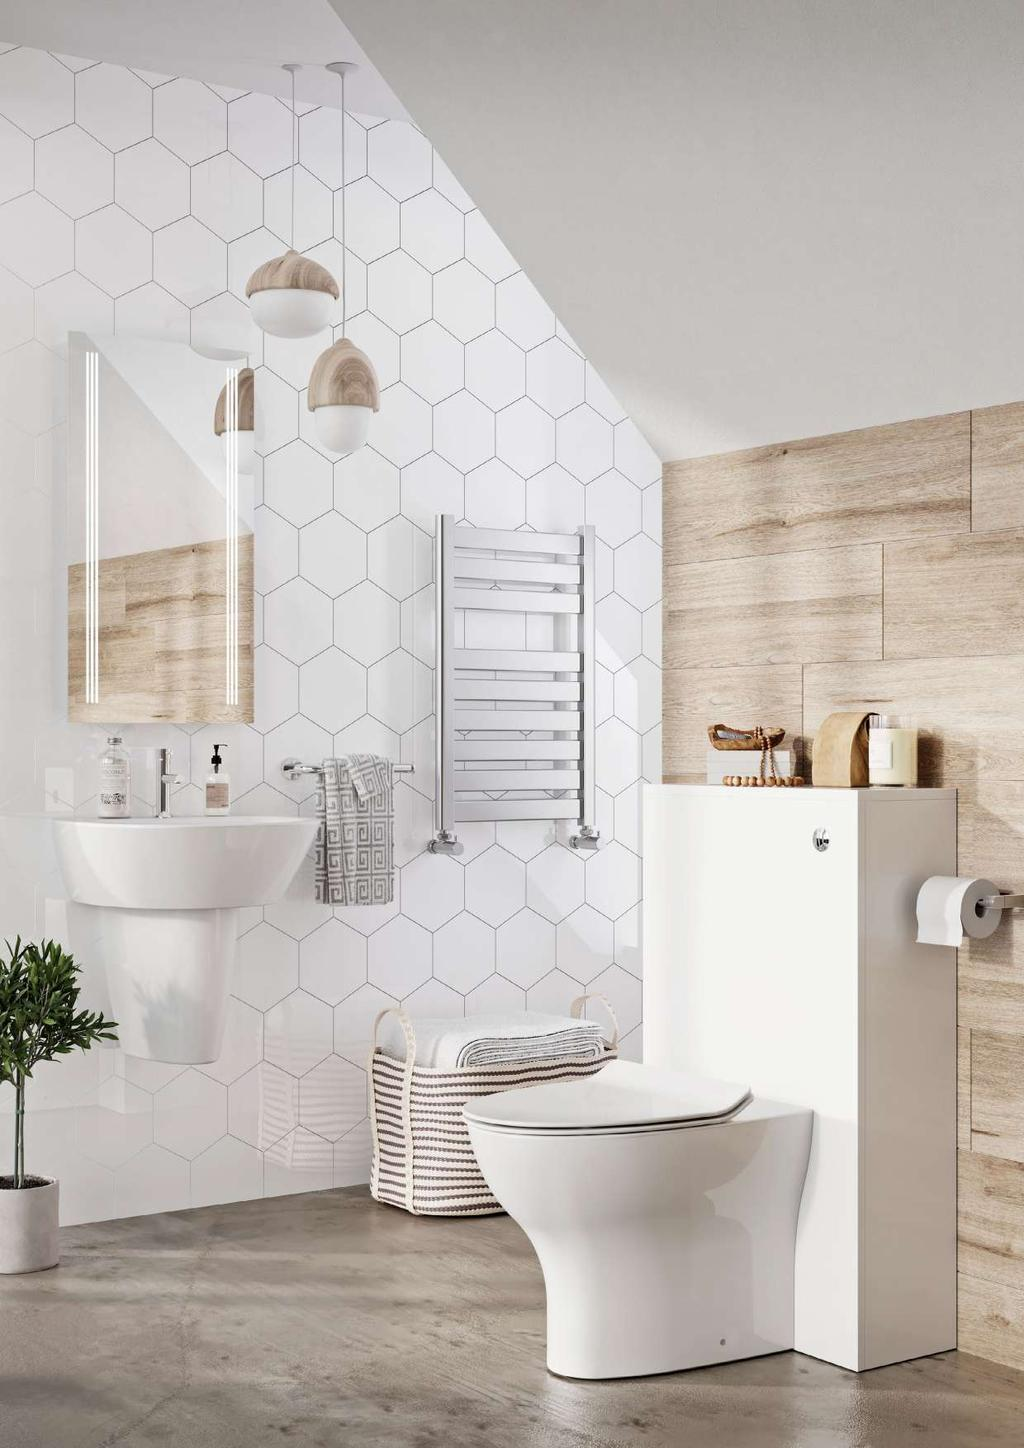 WAS 1,482 NOW 884 Zion Petite white gloss wall hung unit (drawer) ZN4900DWG WAS 385 NOW 231 Zion curved handle ZNHBOW-CP WAS 30 NOW 18 Zion Petite basin ZN0501SCW WAS 115 NOW 69 Atoll basin monobloc